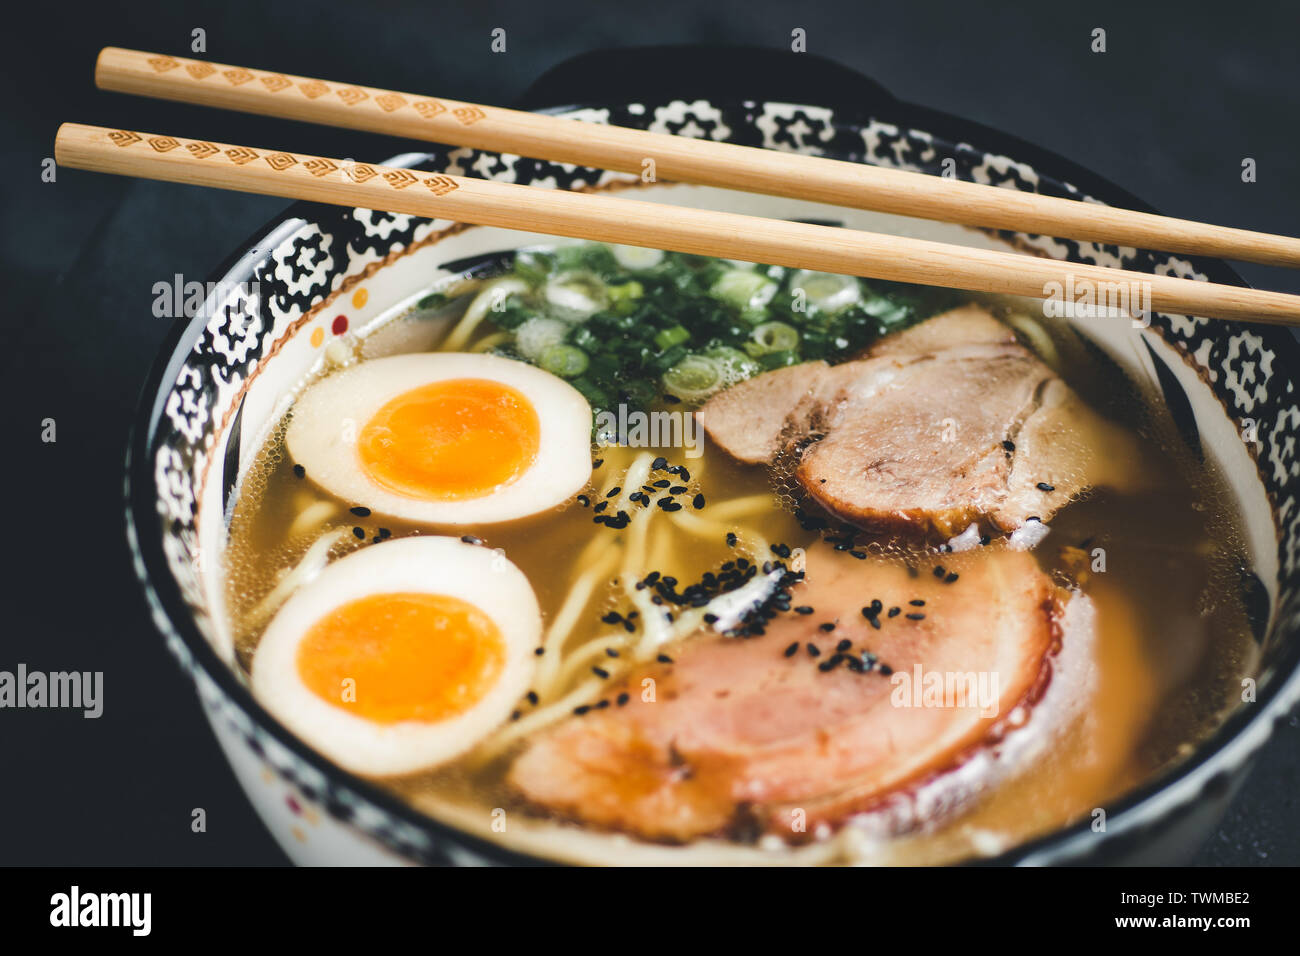 Traditional Ramen Soup with Udon Noodles, Pork and Eggs Stock Photo